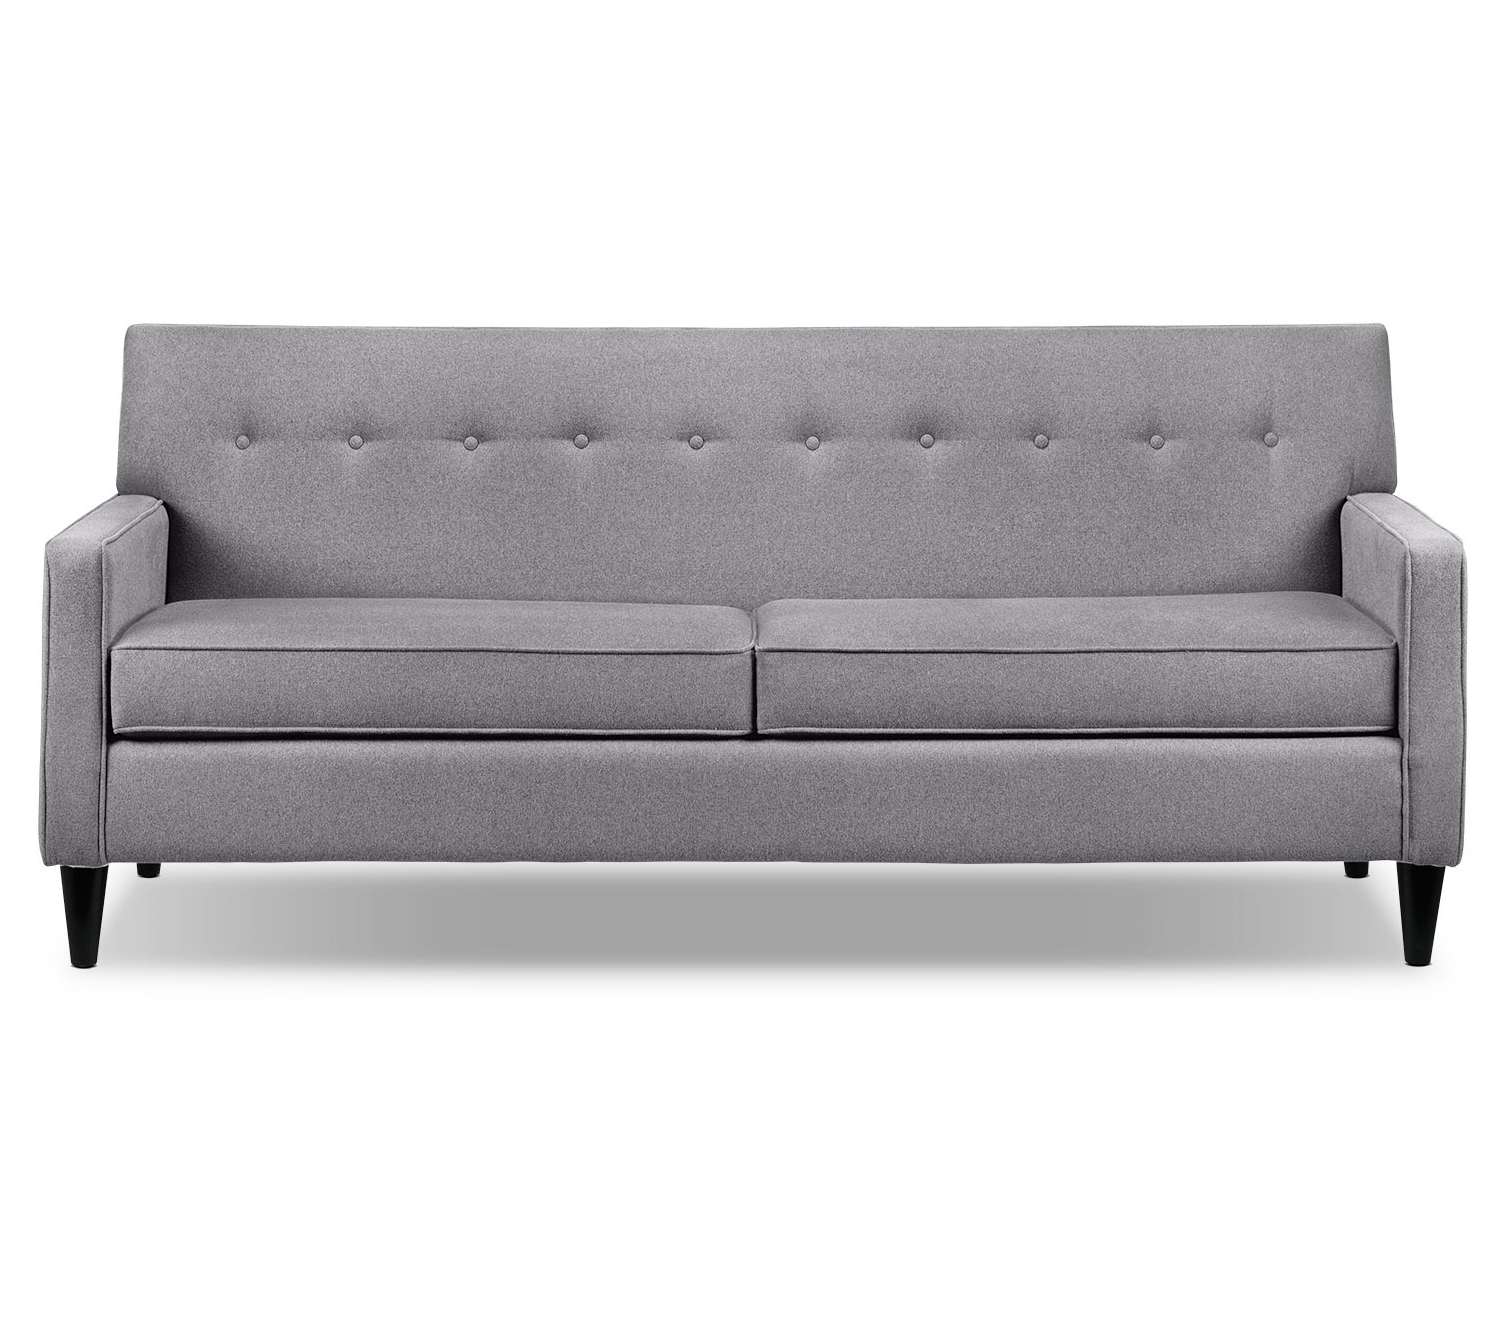 Newfoundland Sectional Sofas Throughout Popular Specter Sofa – Hayward's – The Best Furniture St (View 16 of 20)